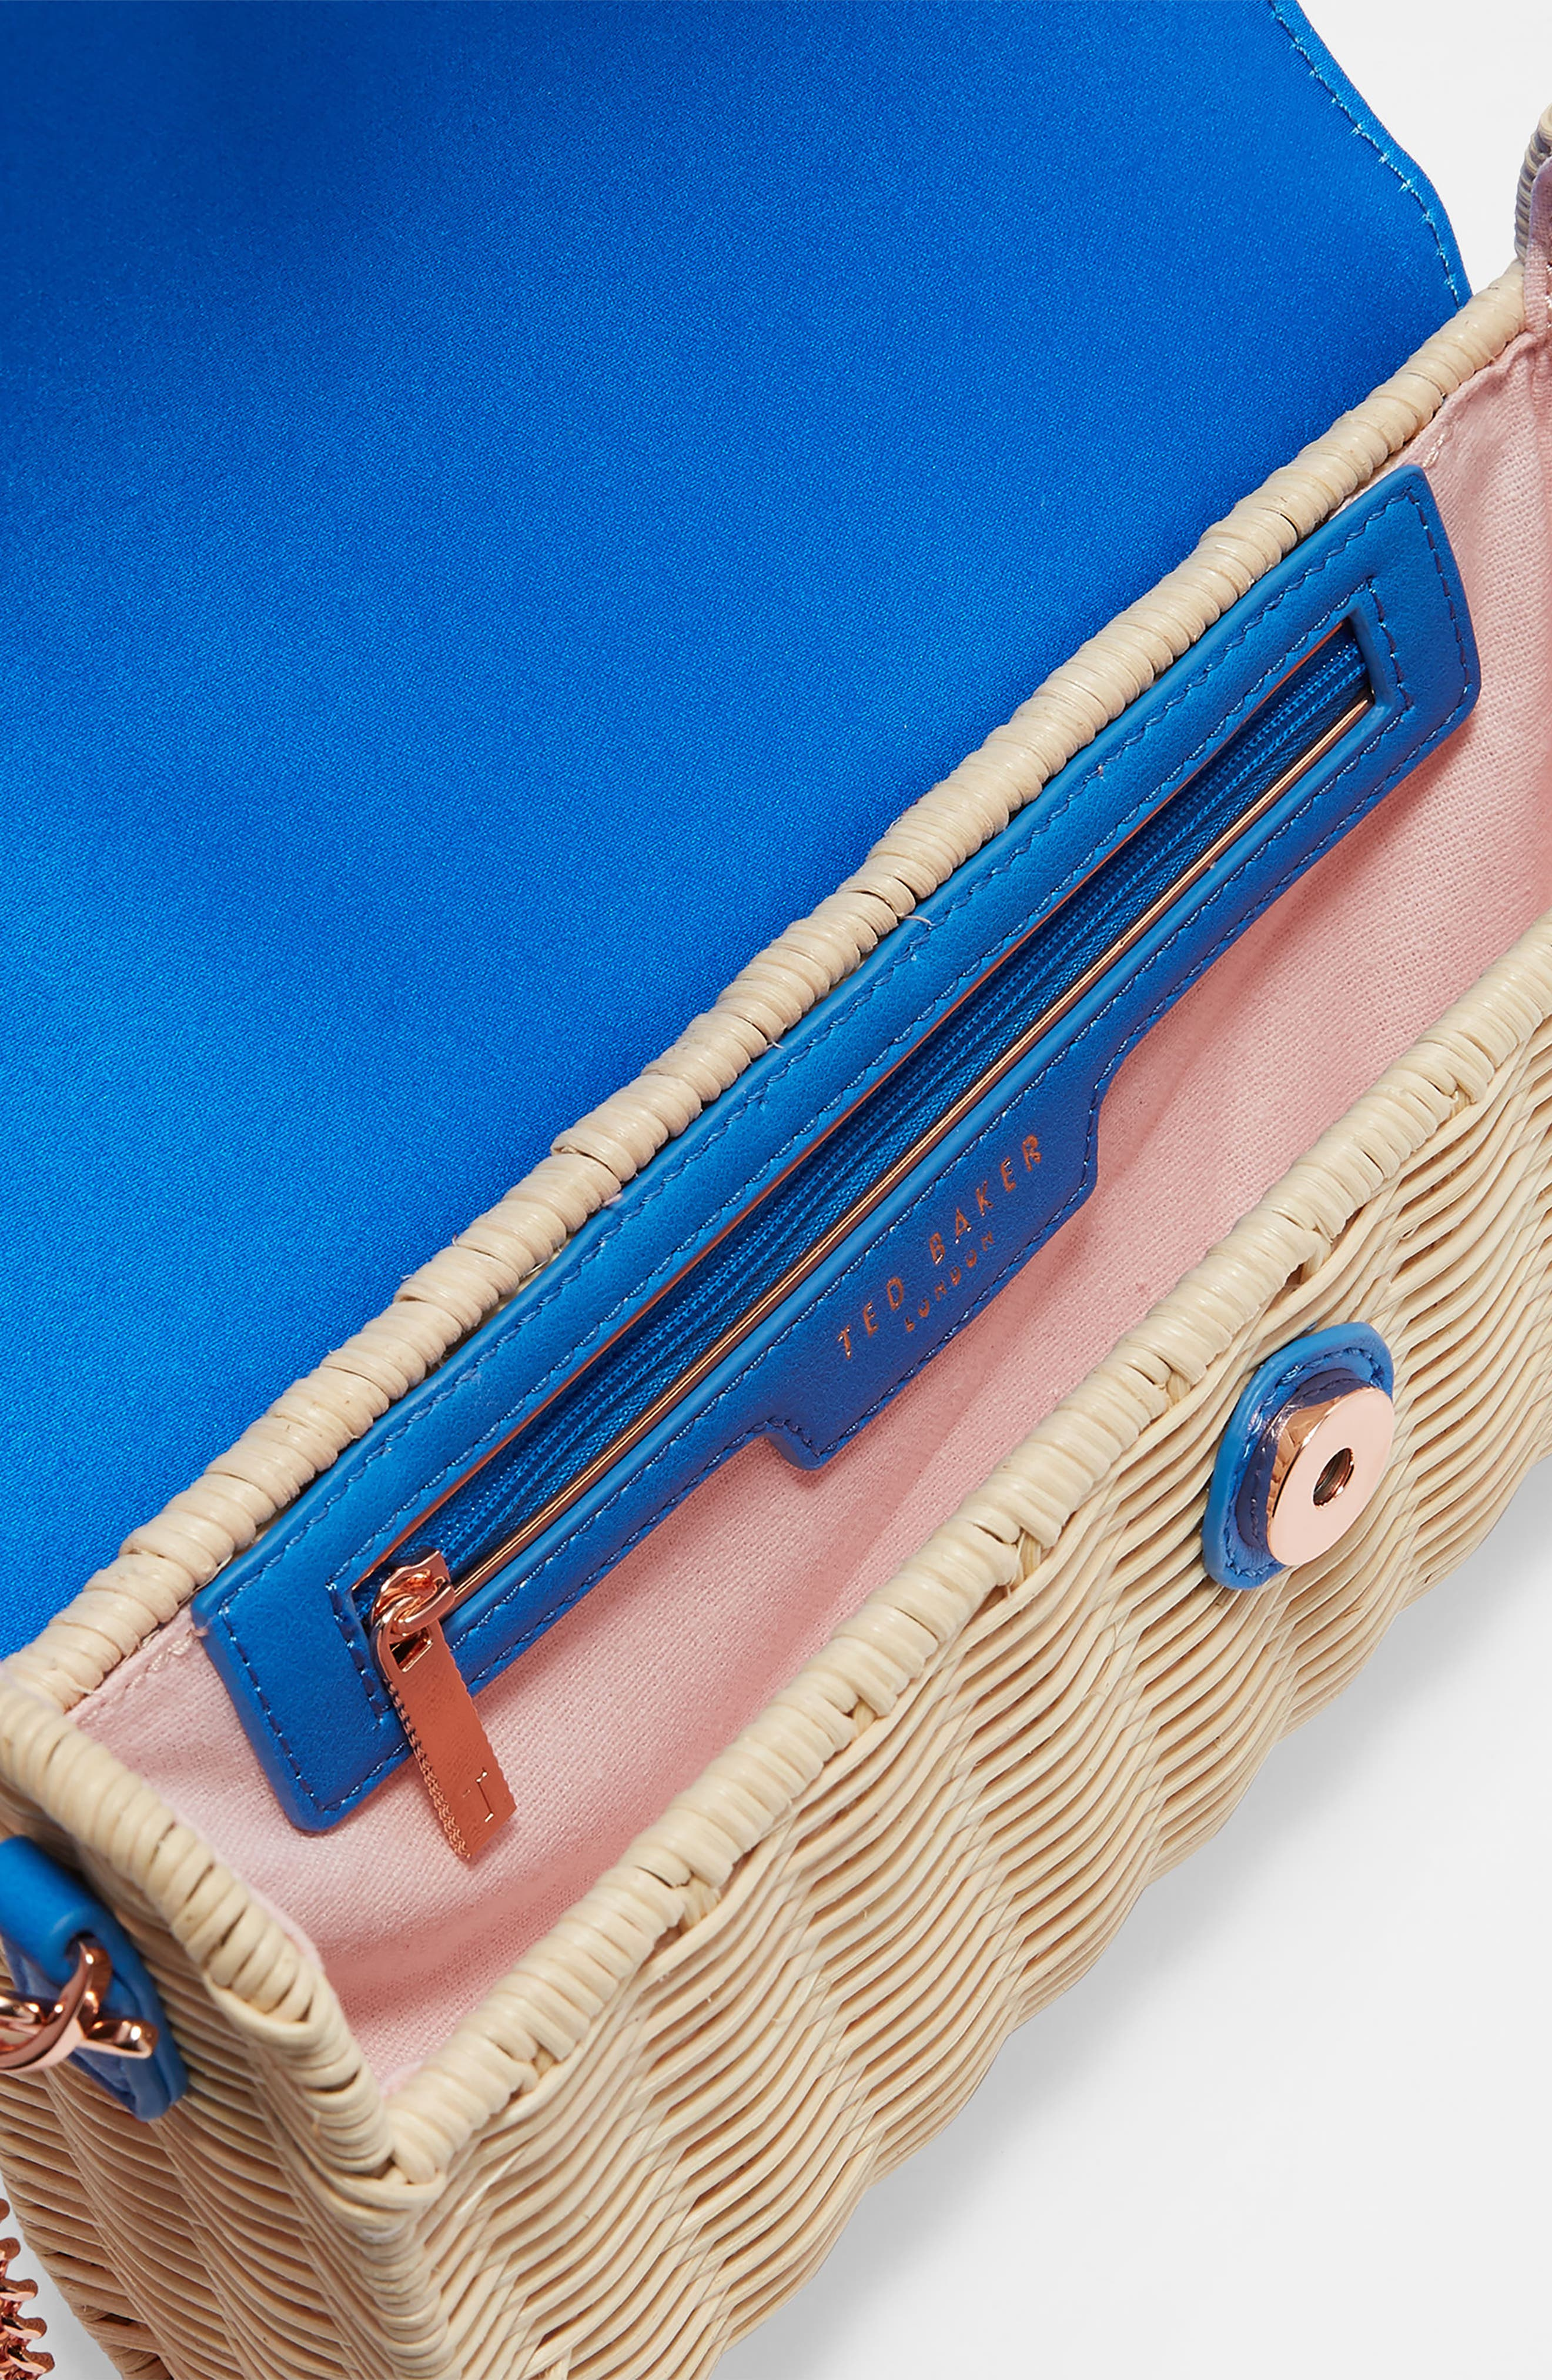 Haarley Harmony Woven Rattan Clutch,                             Alternate thumbnail 2, color,                             Bright Blue